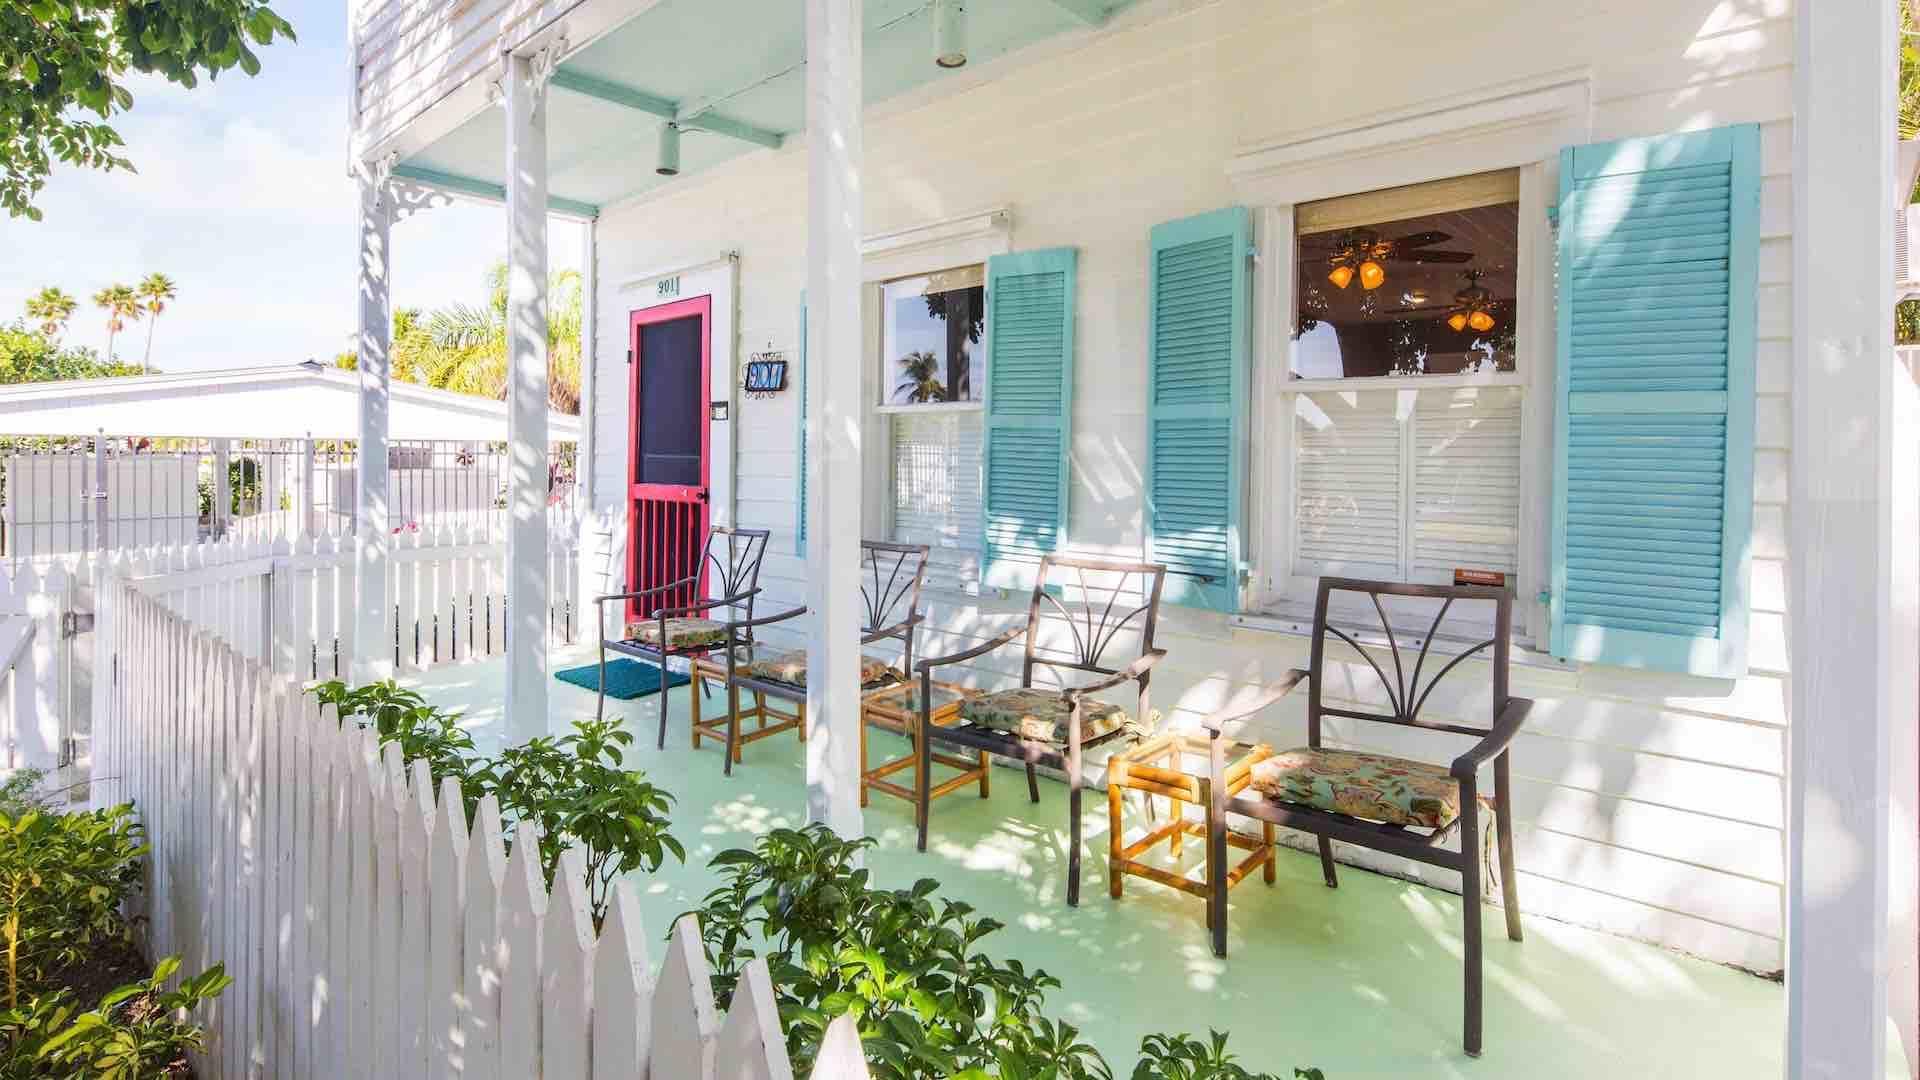 The front porch has seating and is great for people watching...